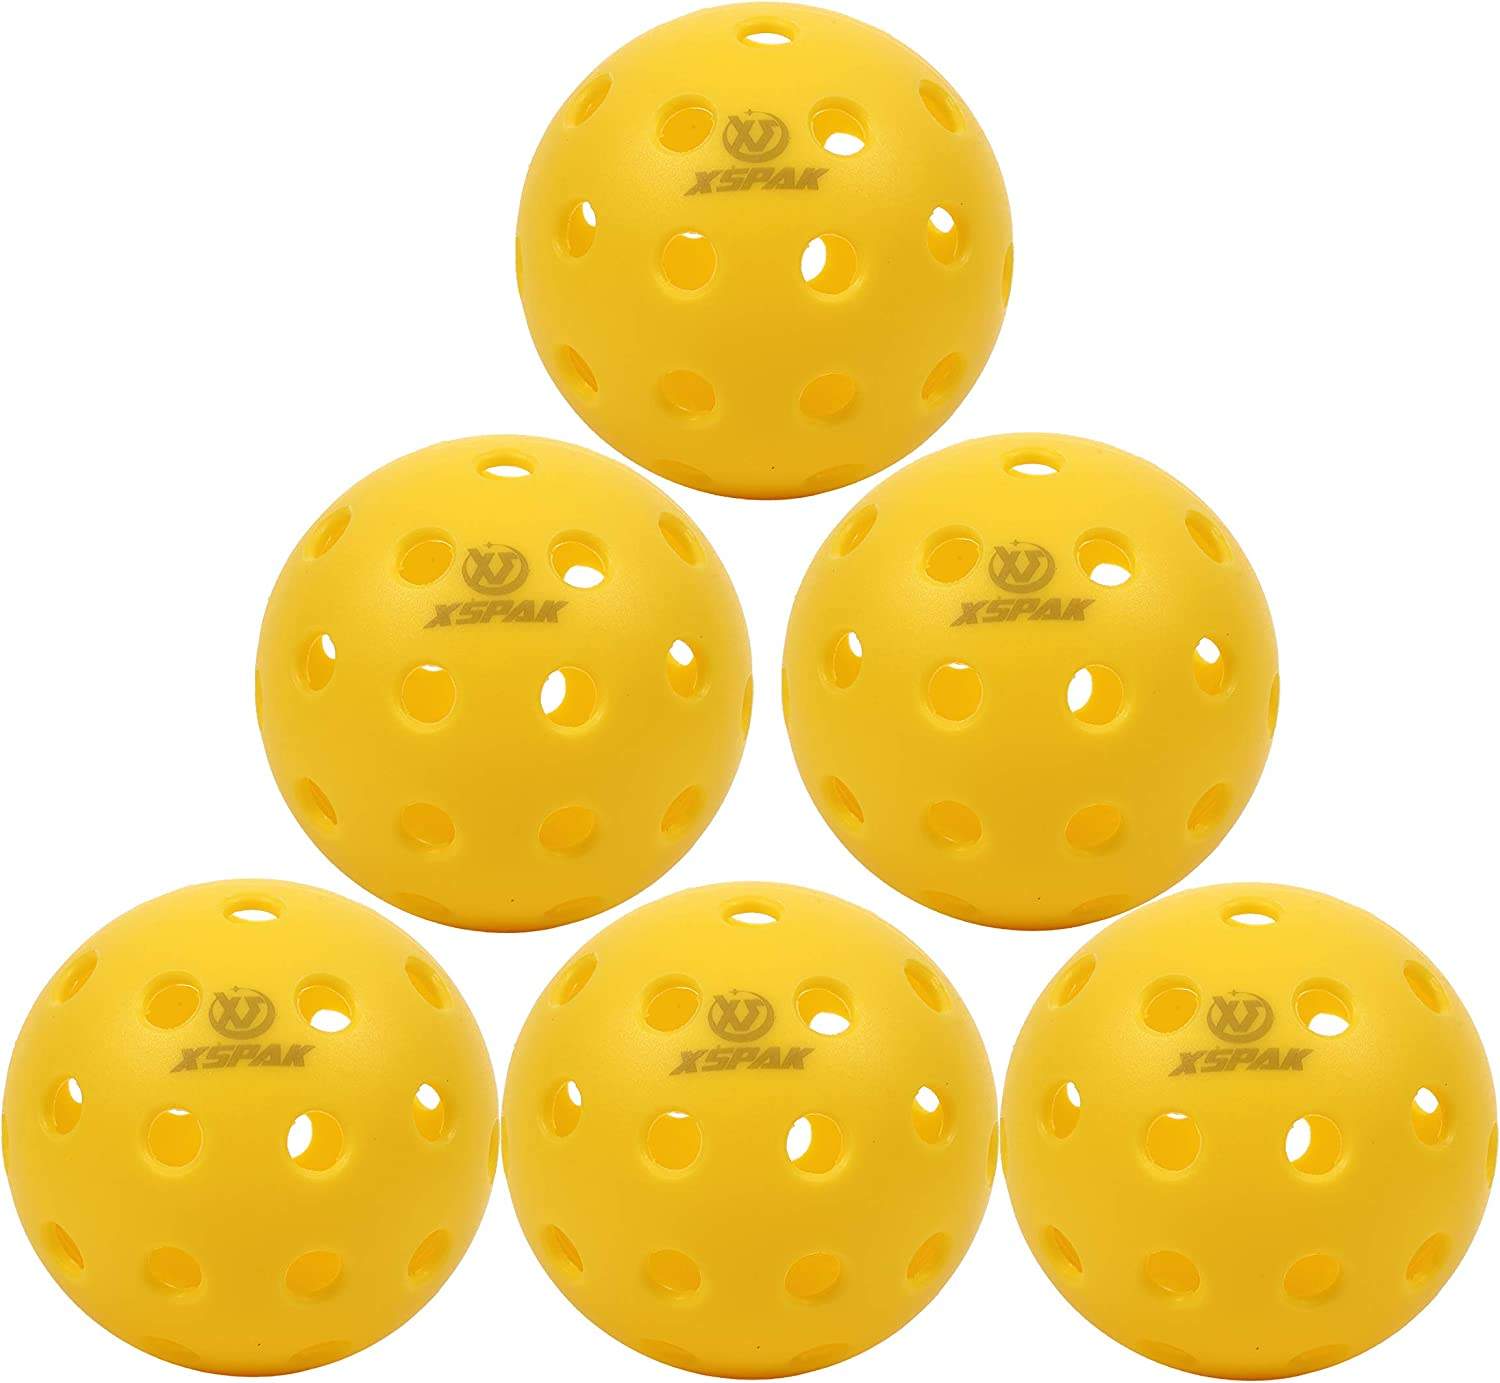 High Elasticity Outdoor Pickleballs Ideal for Pickleball Outdoor /&Indoor Play ARESH 40 Holes Durable Pickleball Balls Set Yellow/&12 Pack